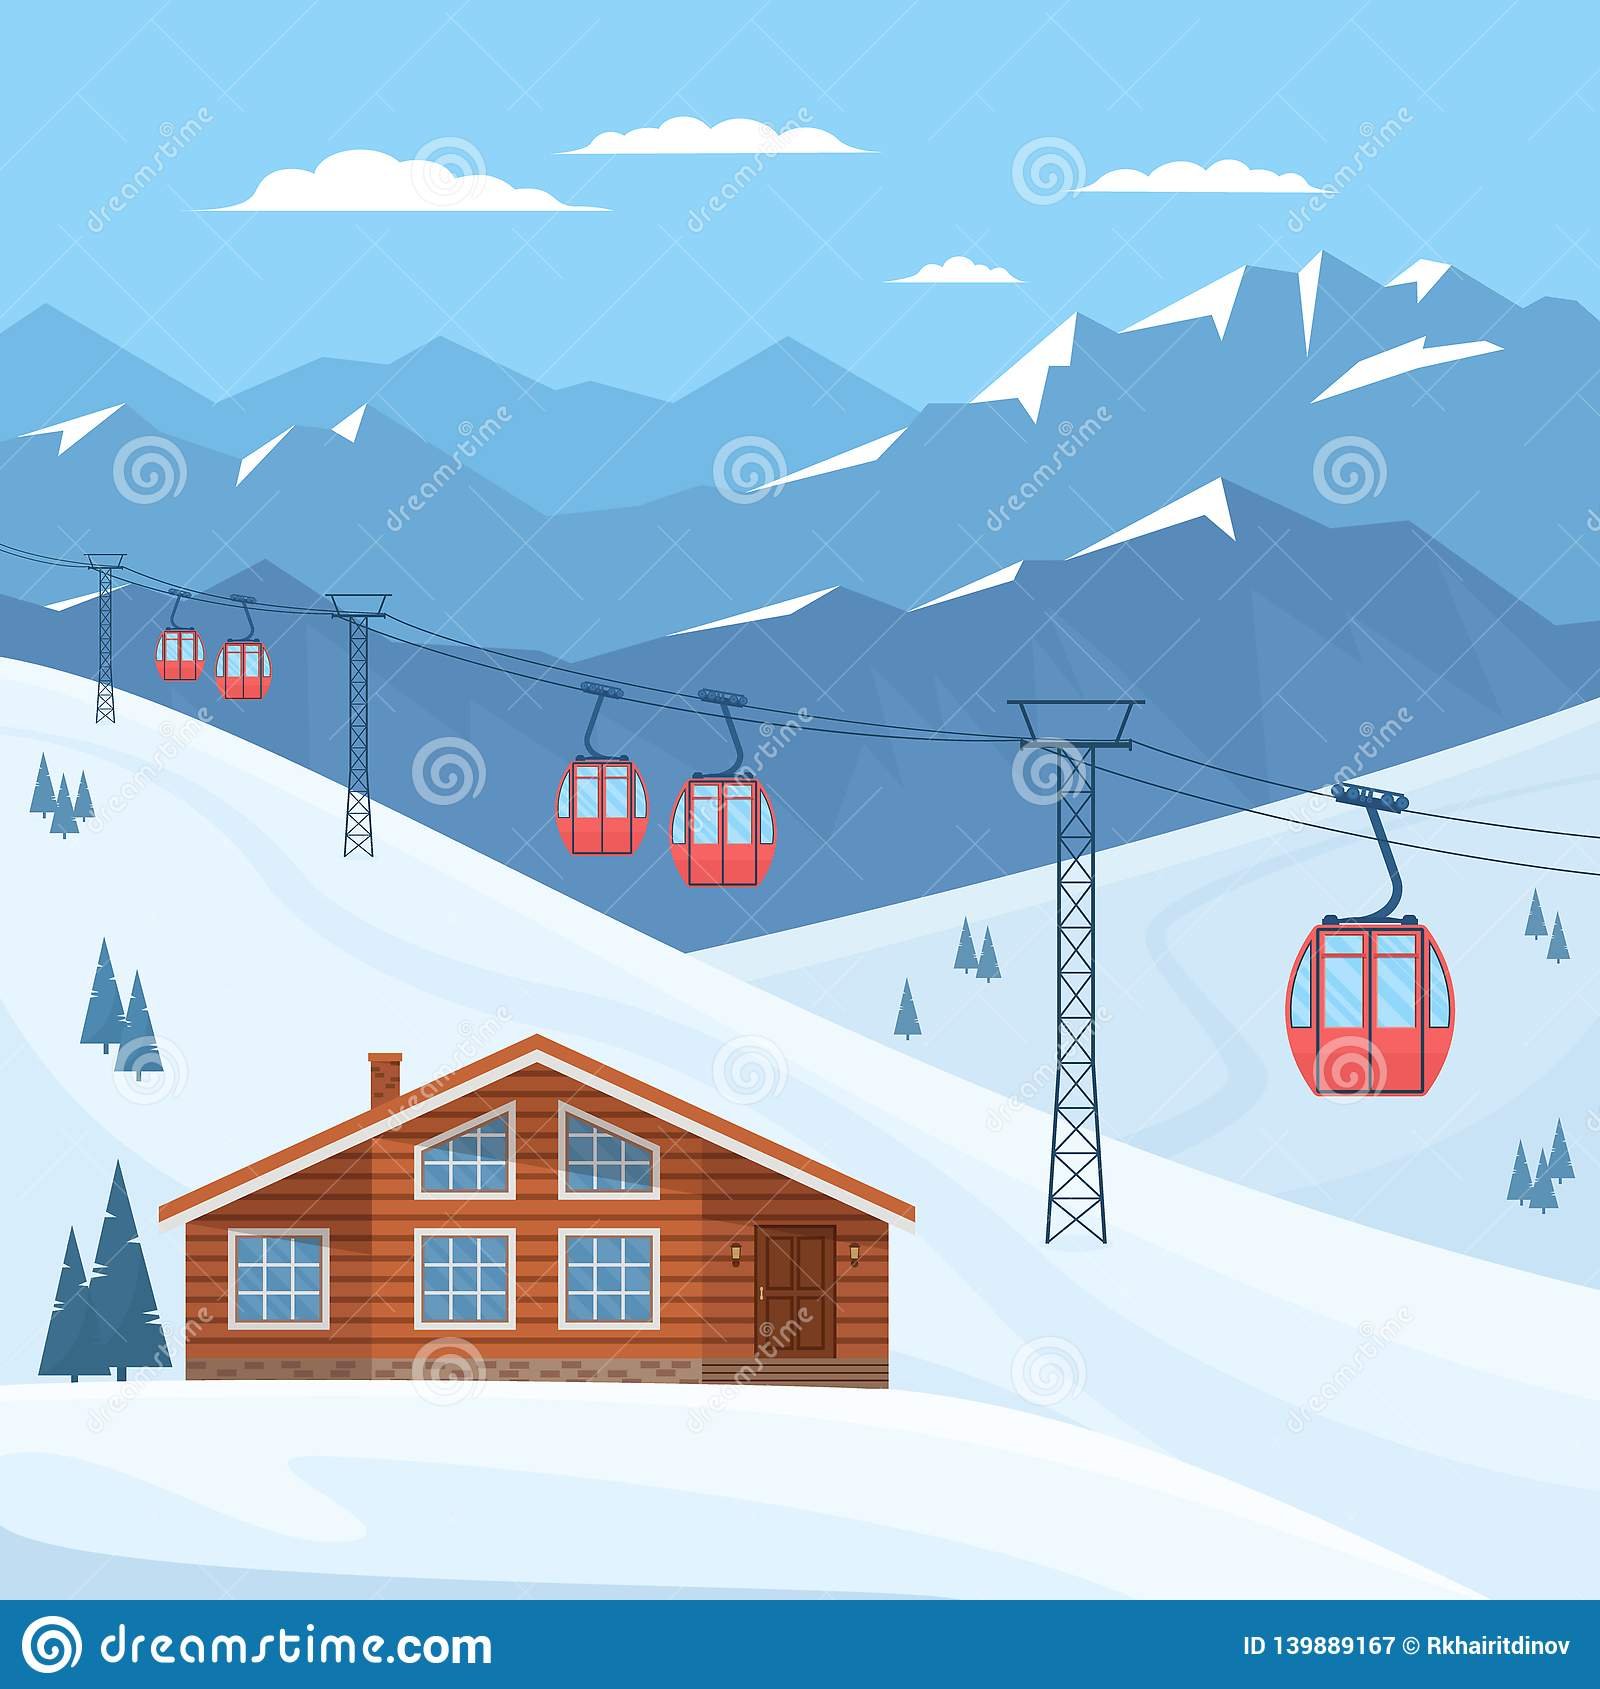 Ski resort with red ski cabin lift on cableway, house, chalet, winter mountain landscape, snowy peaks and slopes.